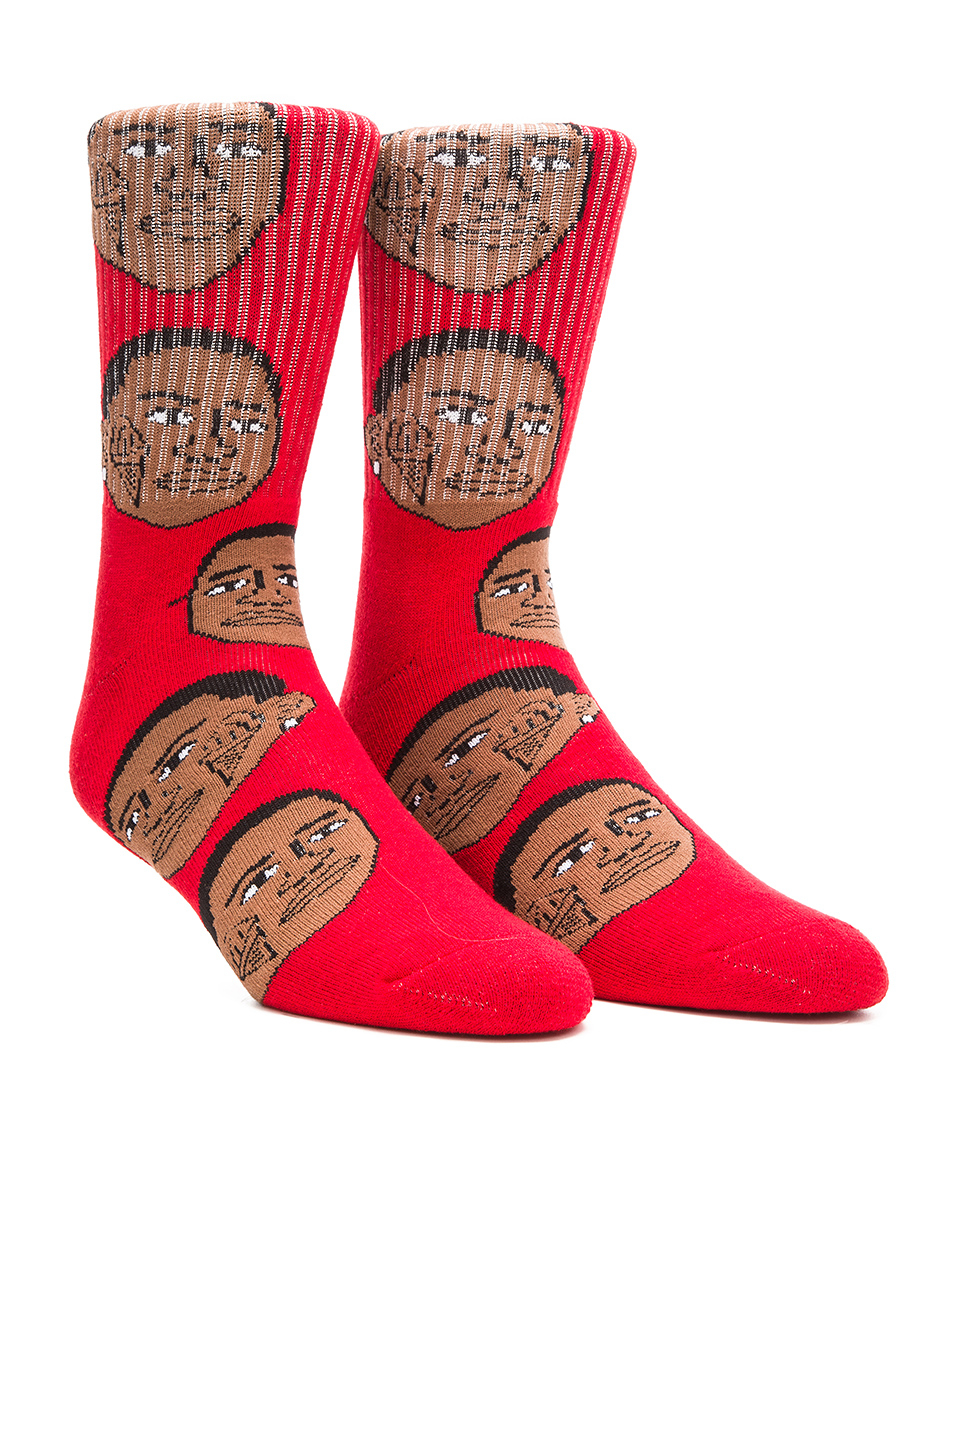 Lyst 40 S Amp Shorties Biggie Baby Amp Ice Cream Socks In